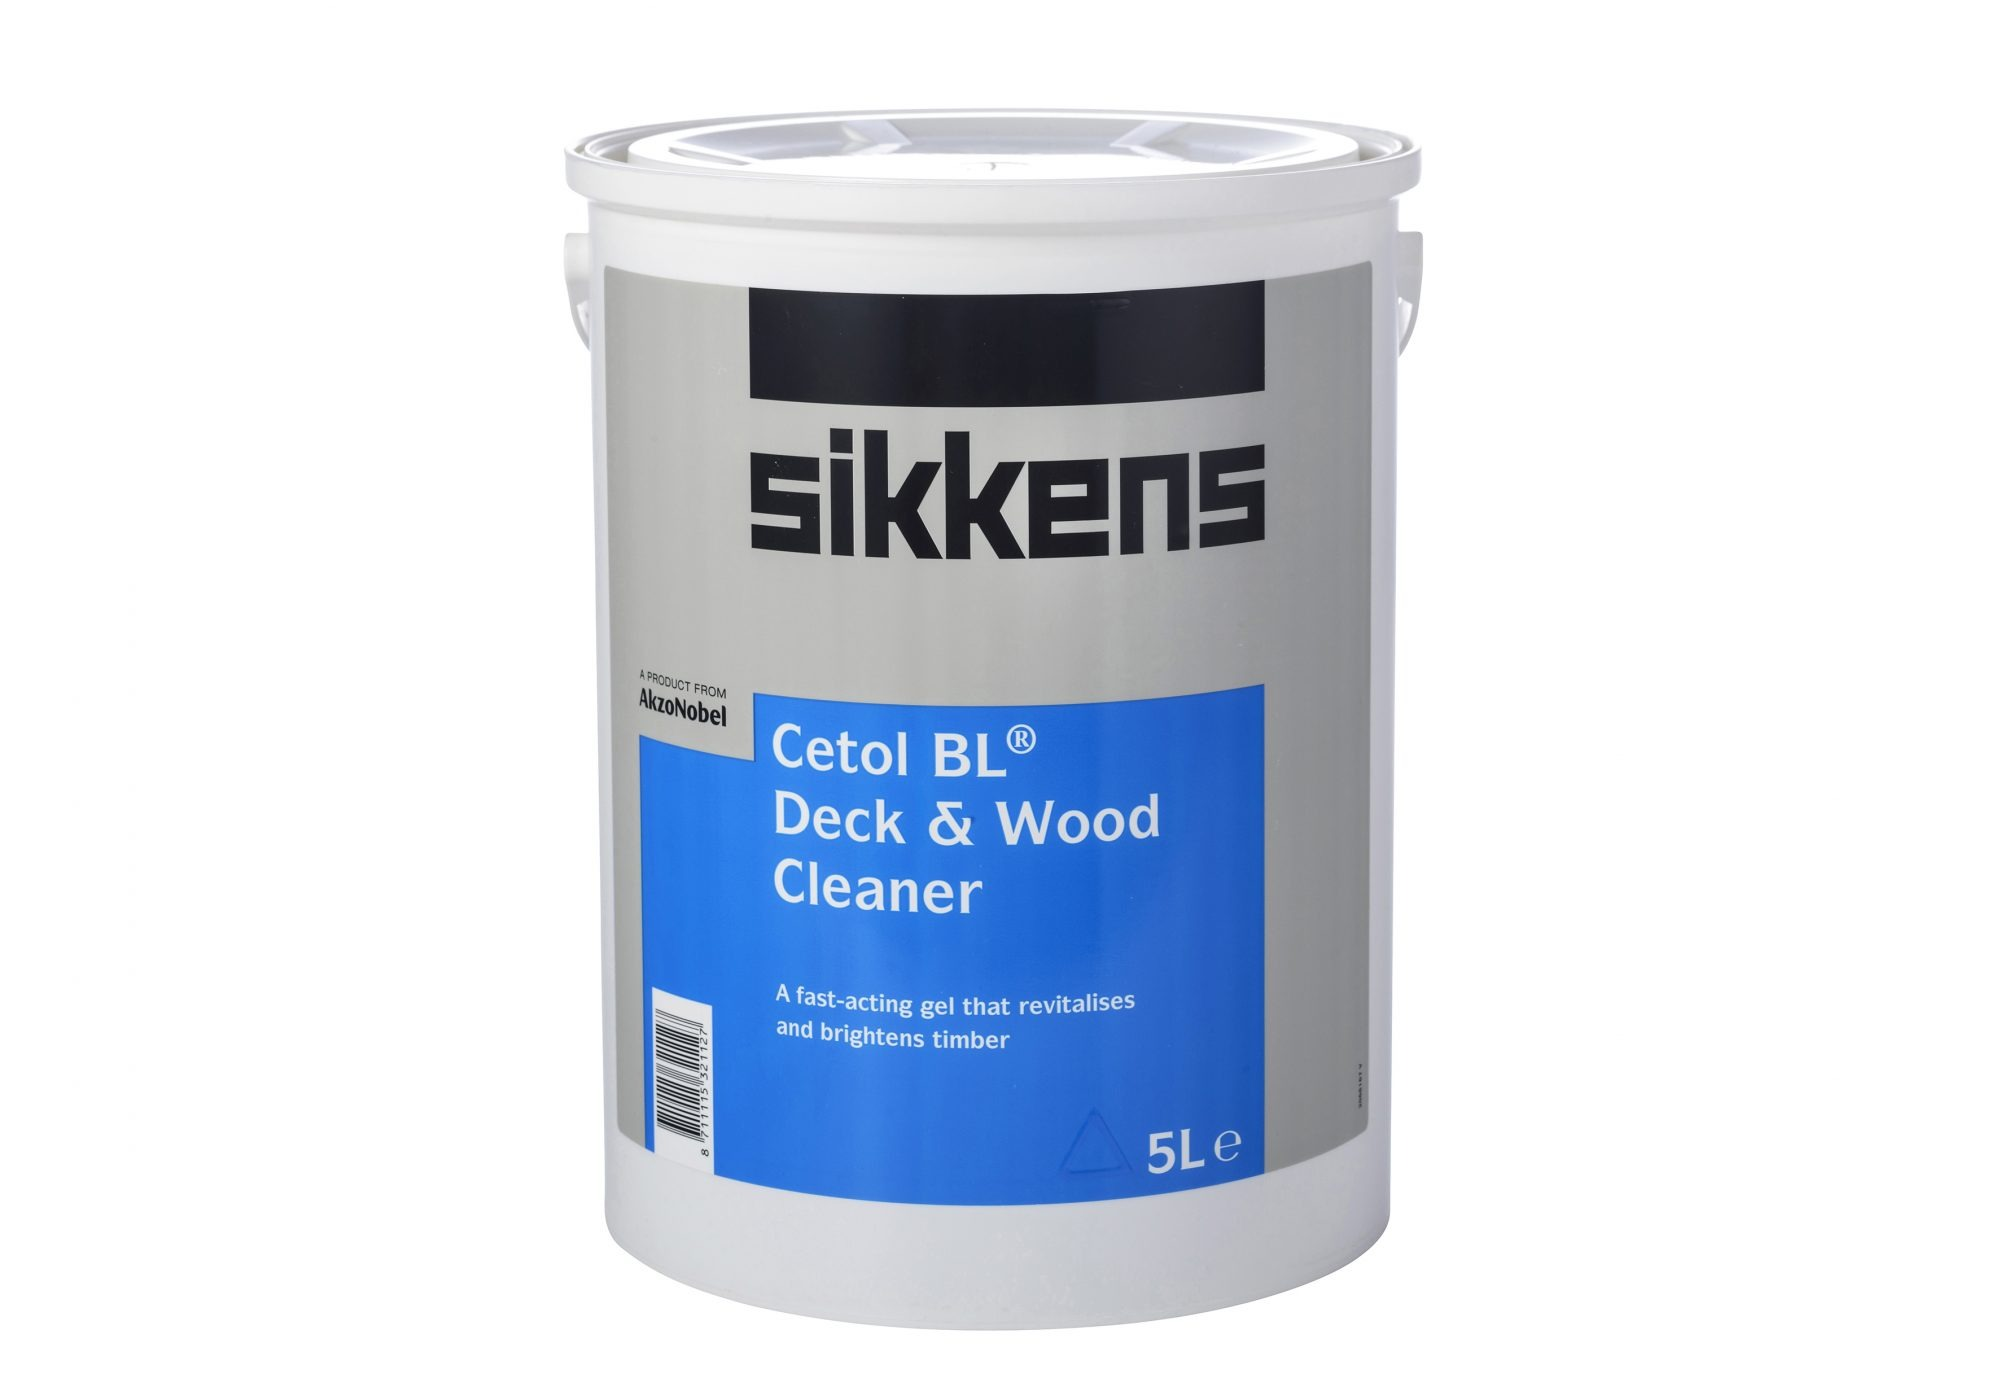 Sikkens Deck and Wood Cleaner